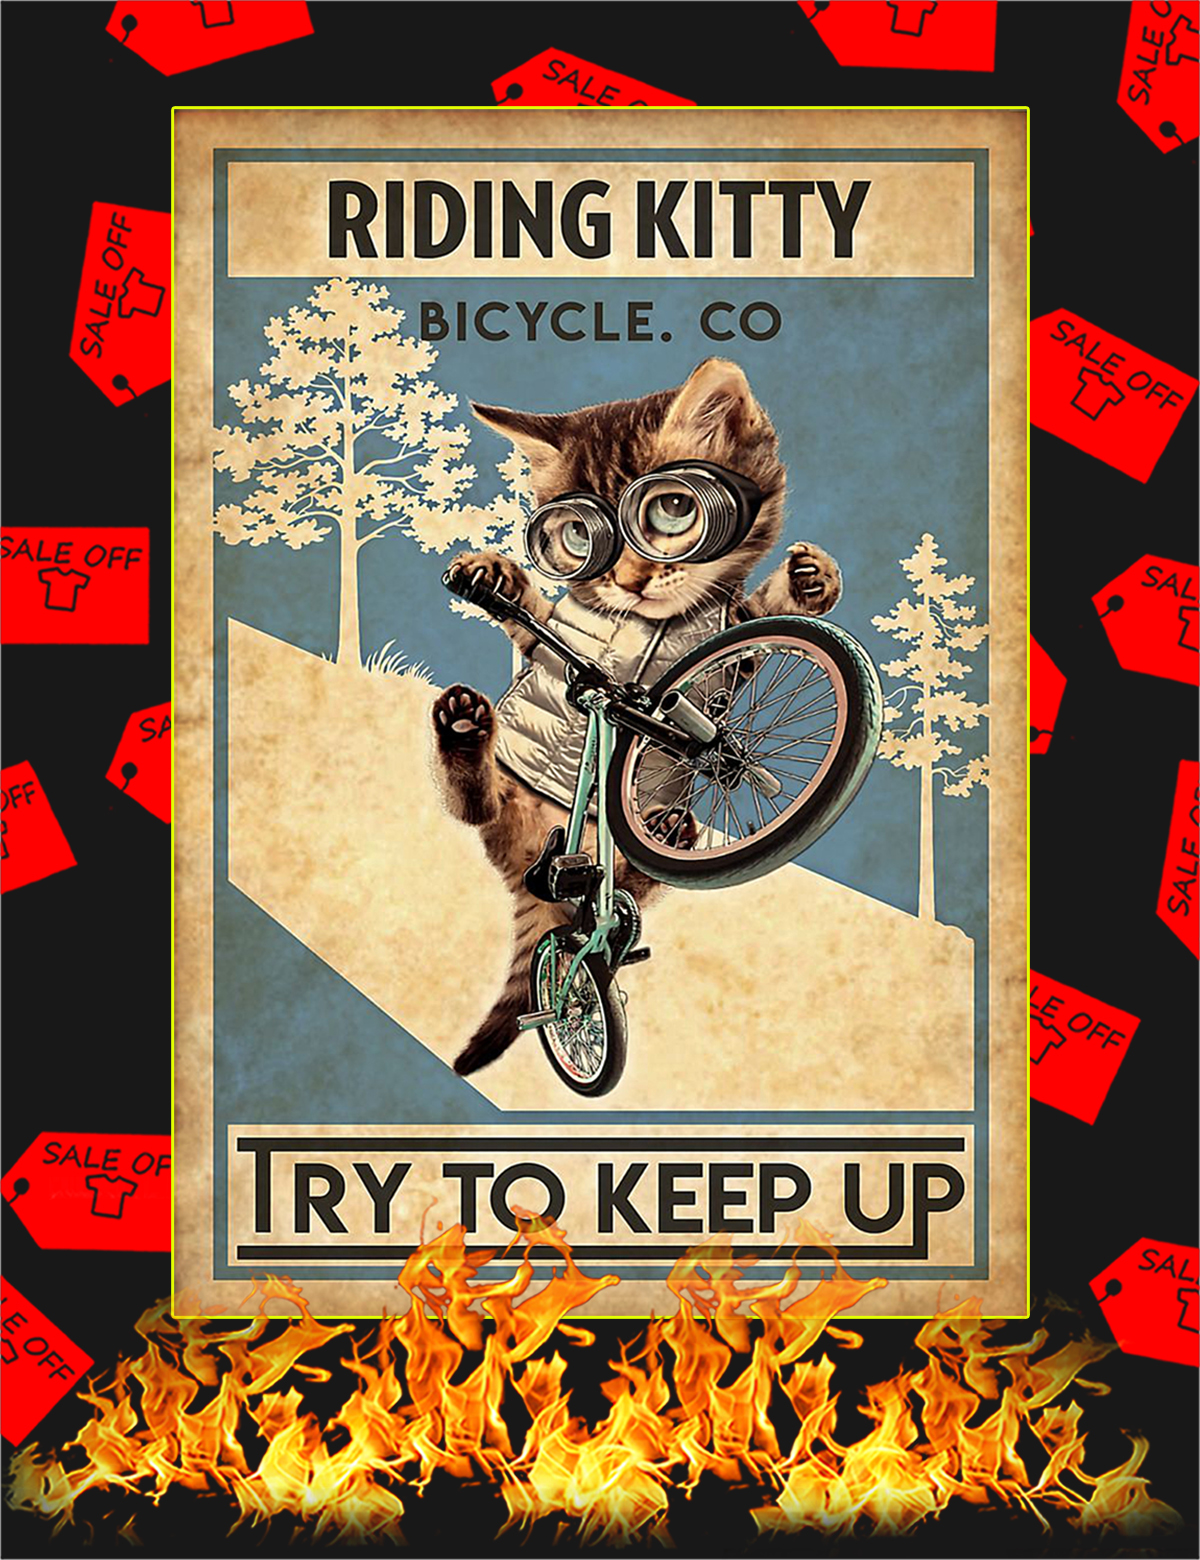 Riding kitty bicycle co try to keep up poster - A1